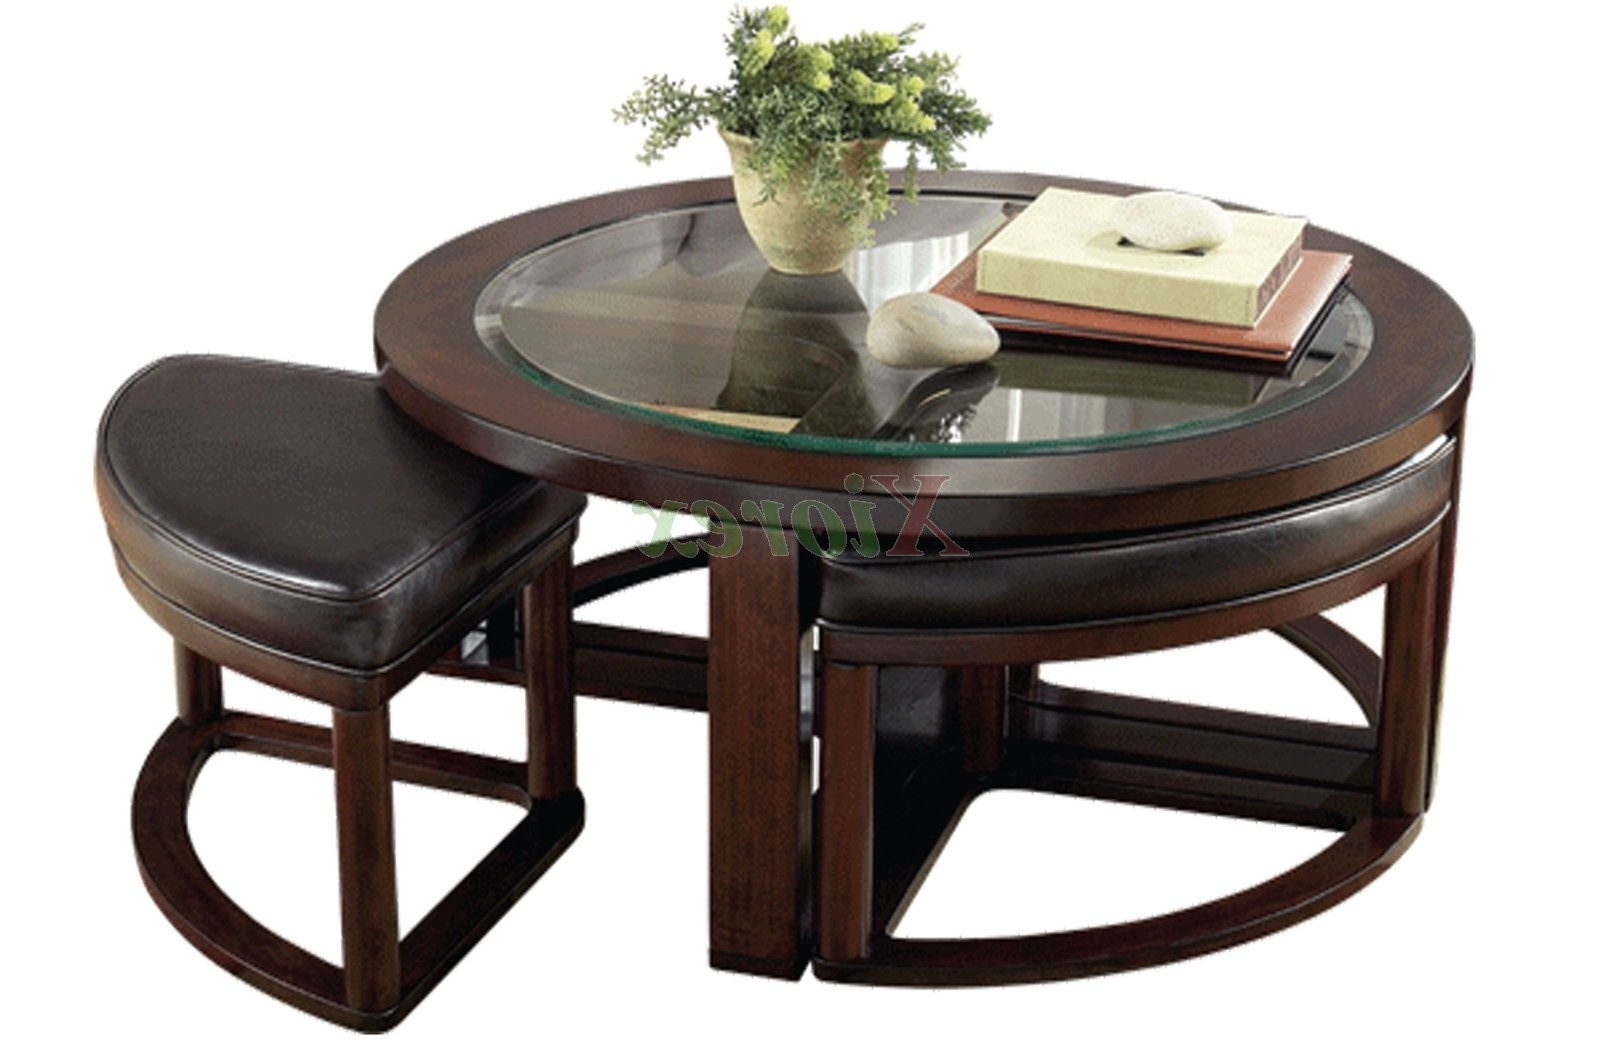 round coffee table with chairs kenny design wooden stools underneath furniture row and end tables tzolkin calendar black brown best finish for cherry top west elm parsons daybed